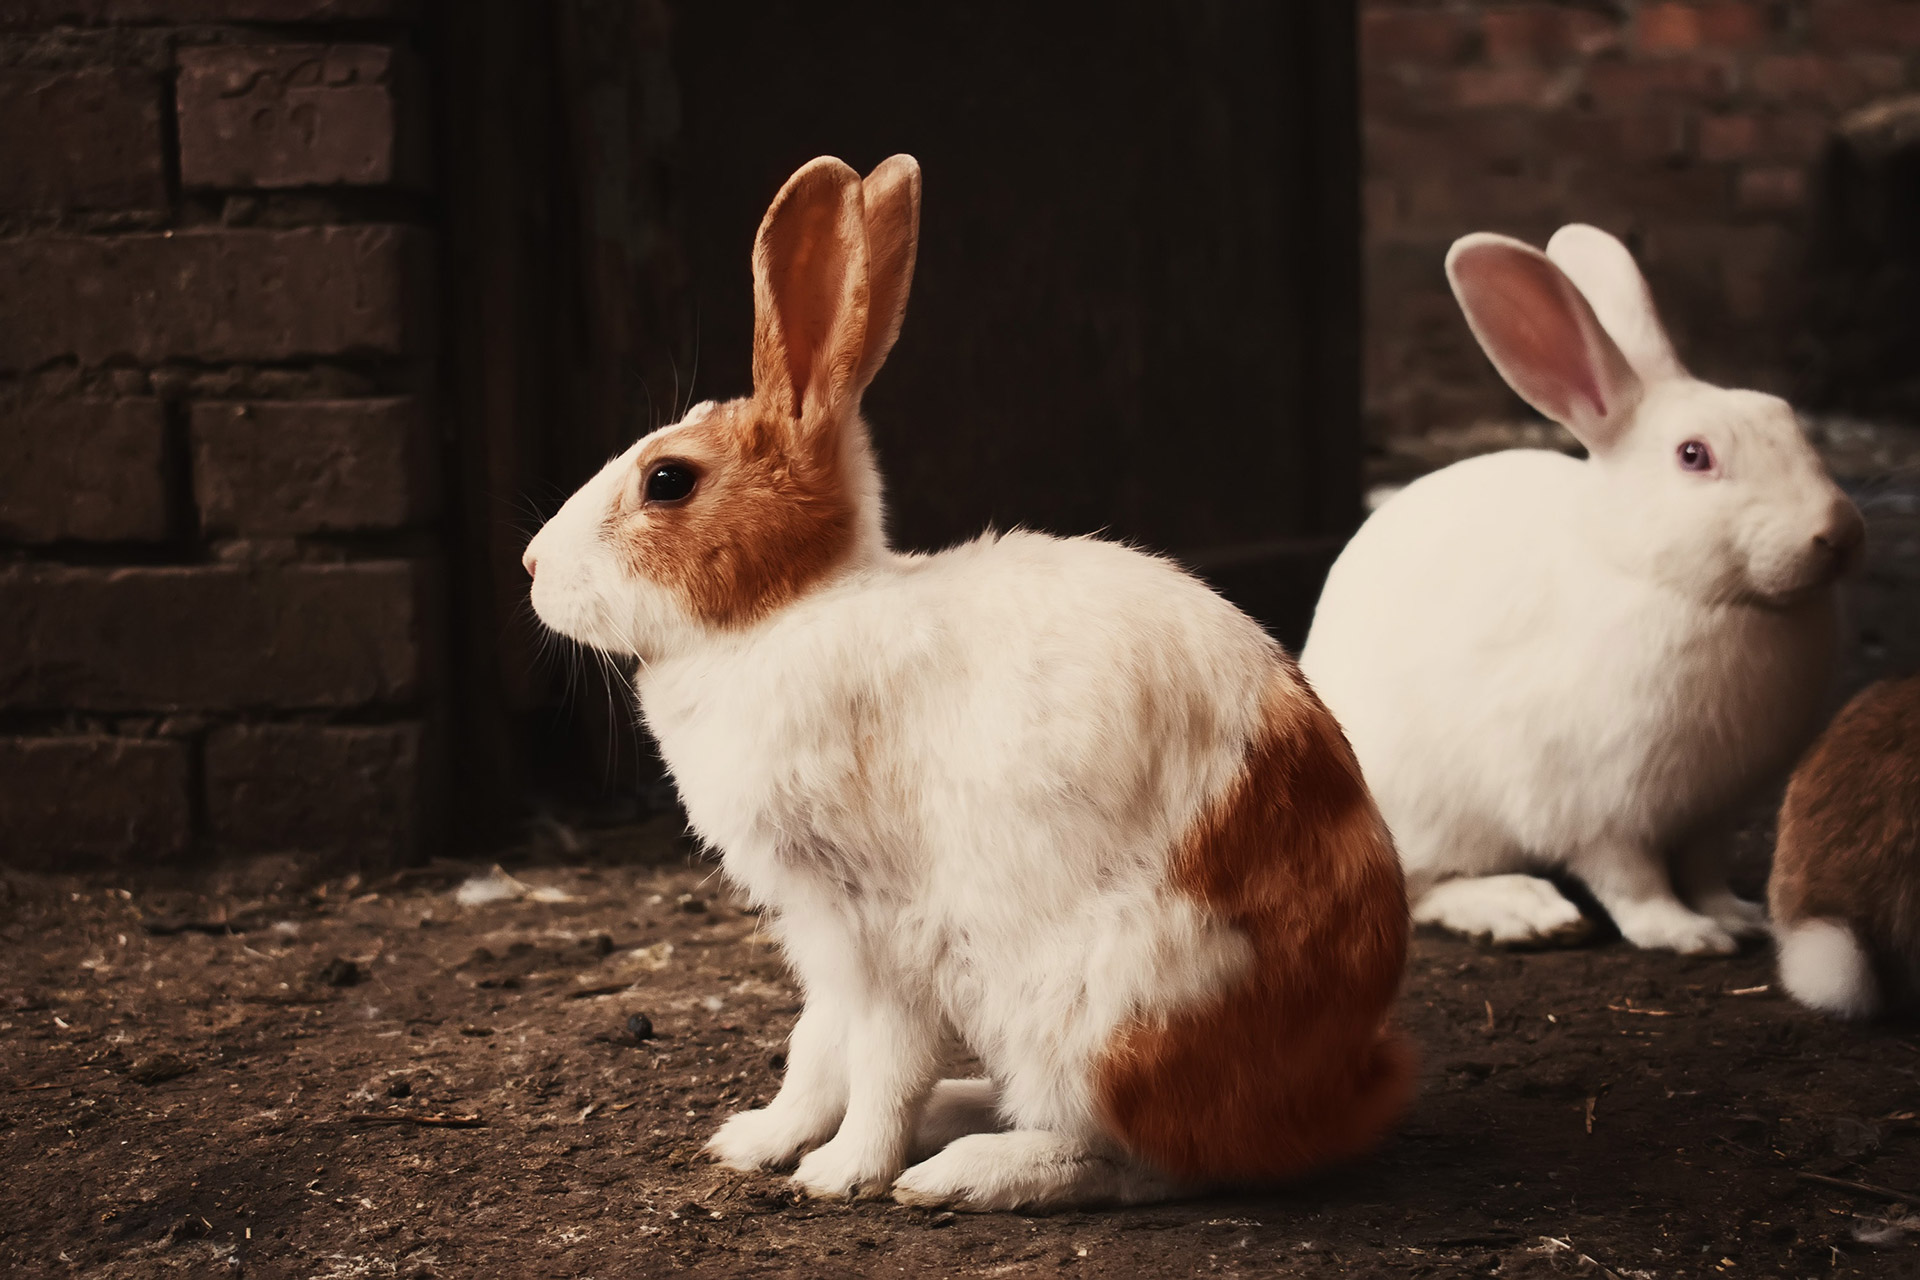 Animal Rights Activism | End Animal Testing